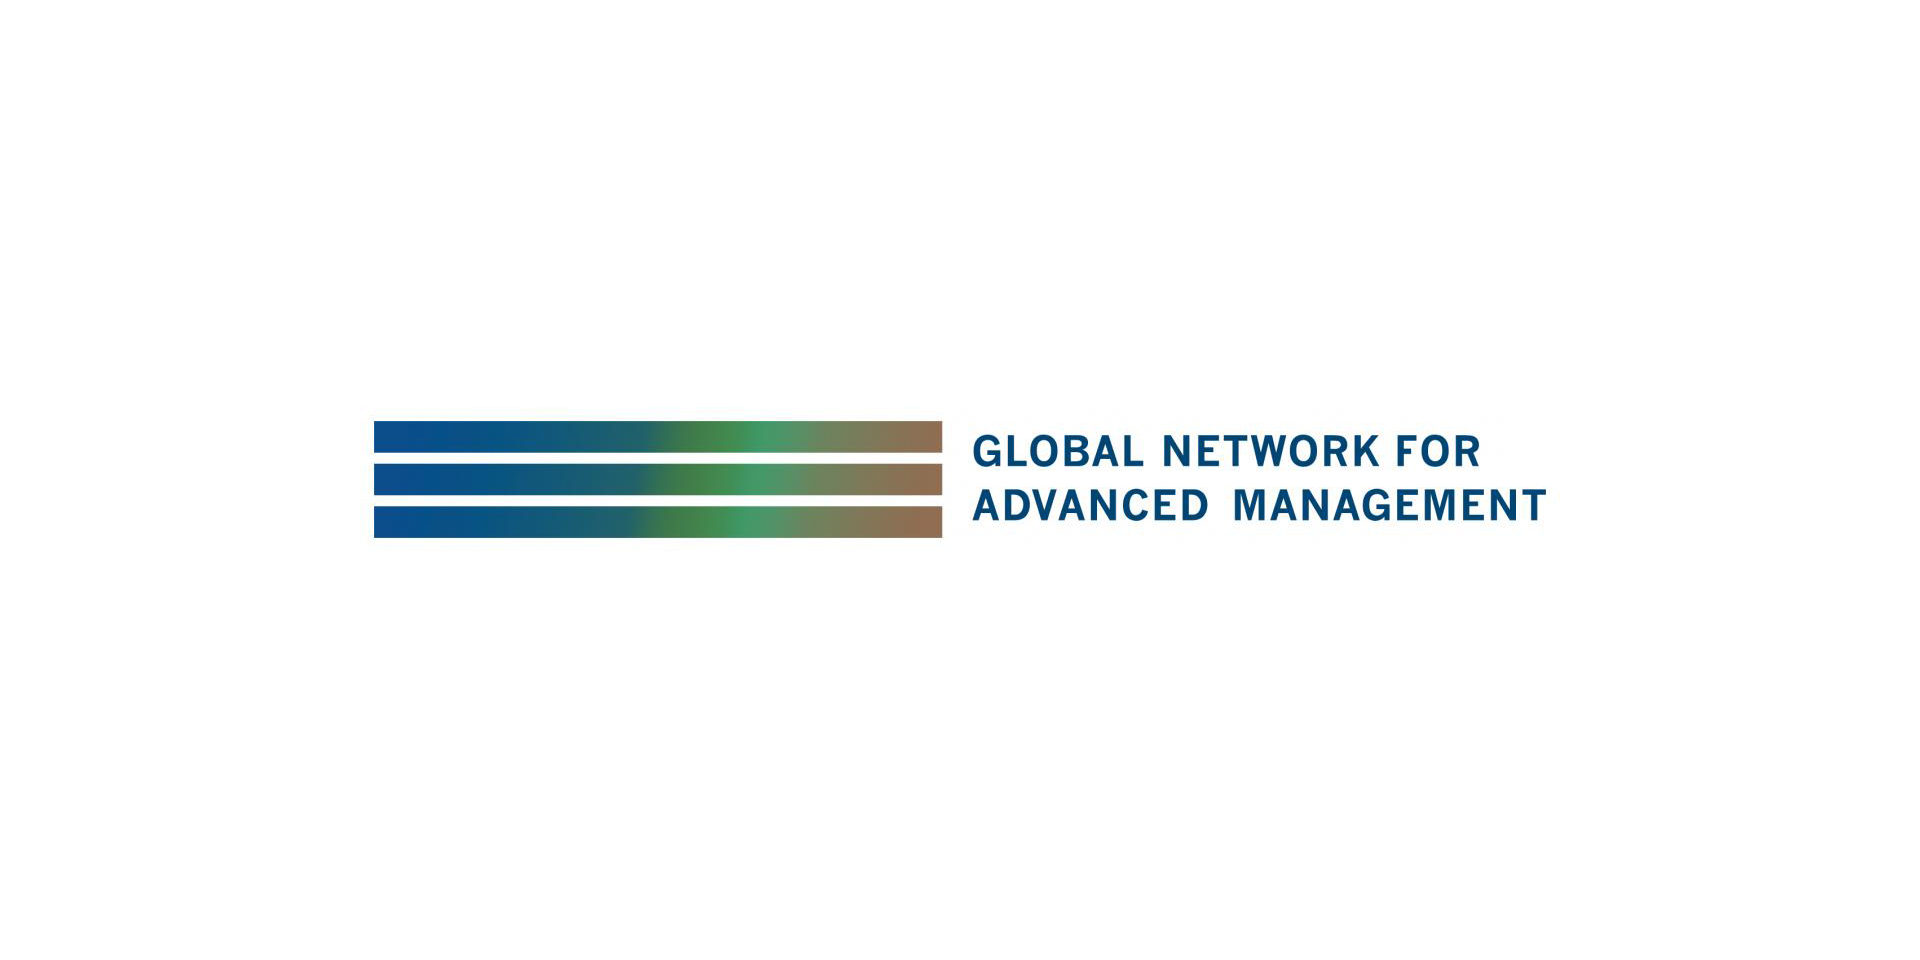 [Global Network] The Role of Capital Markets for Emerging Countries